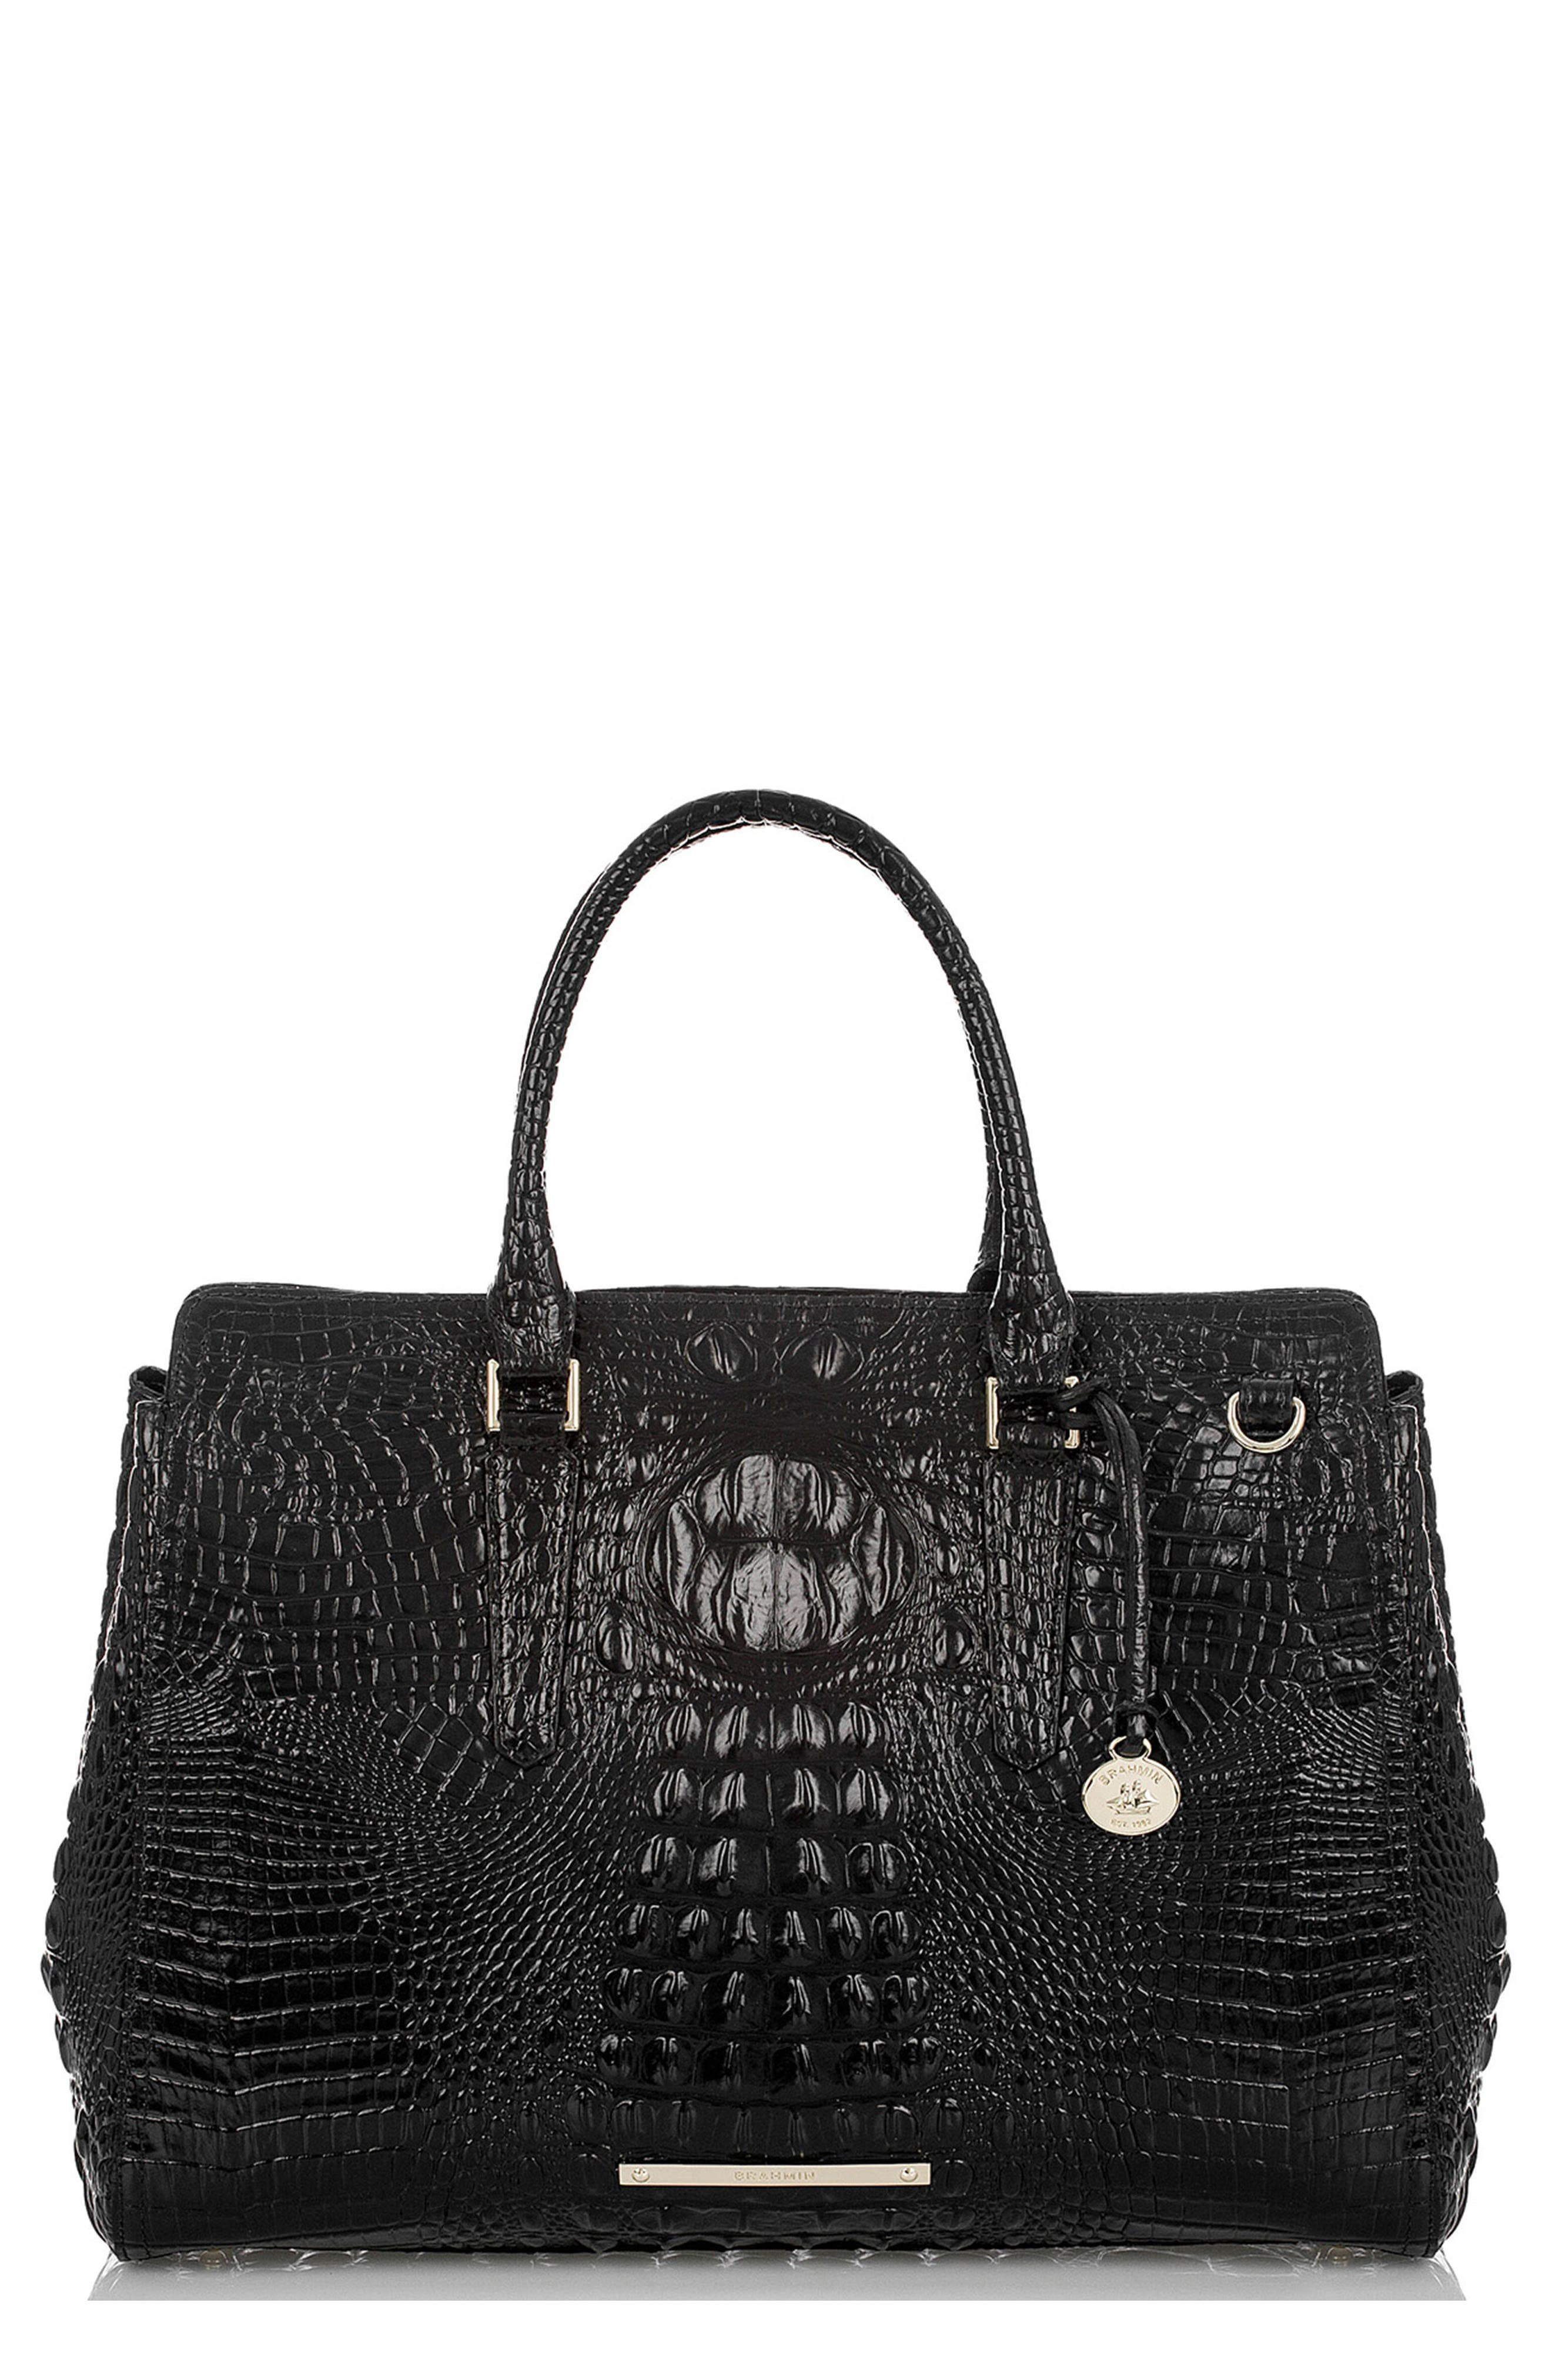 BRAHMIN Finley Croc Embossed Leather Tote, Main, color, 001